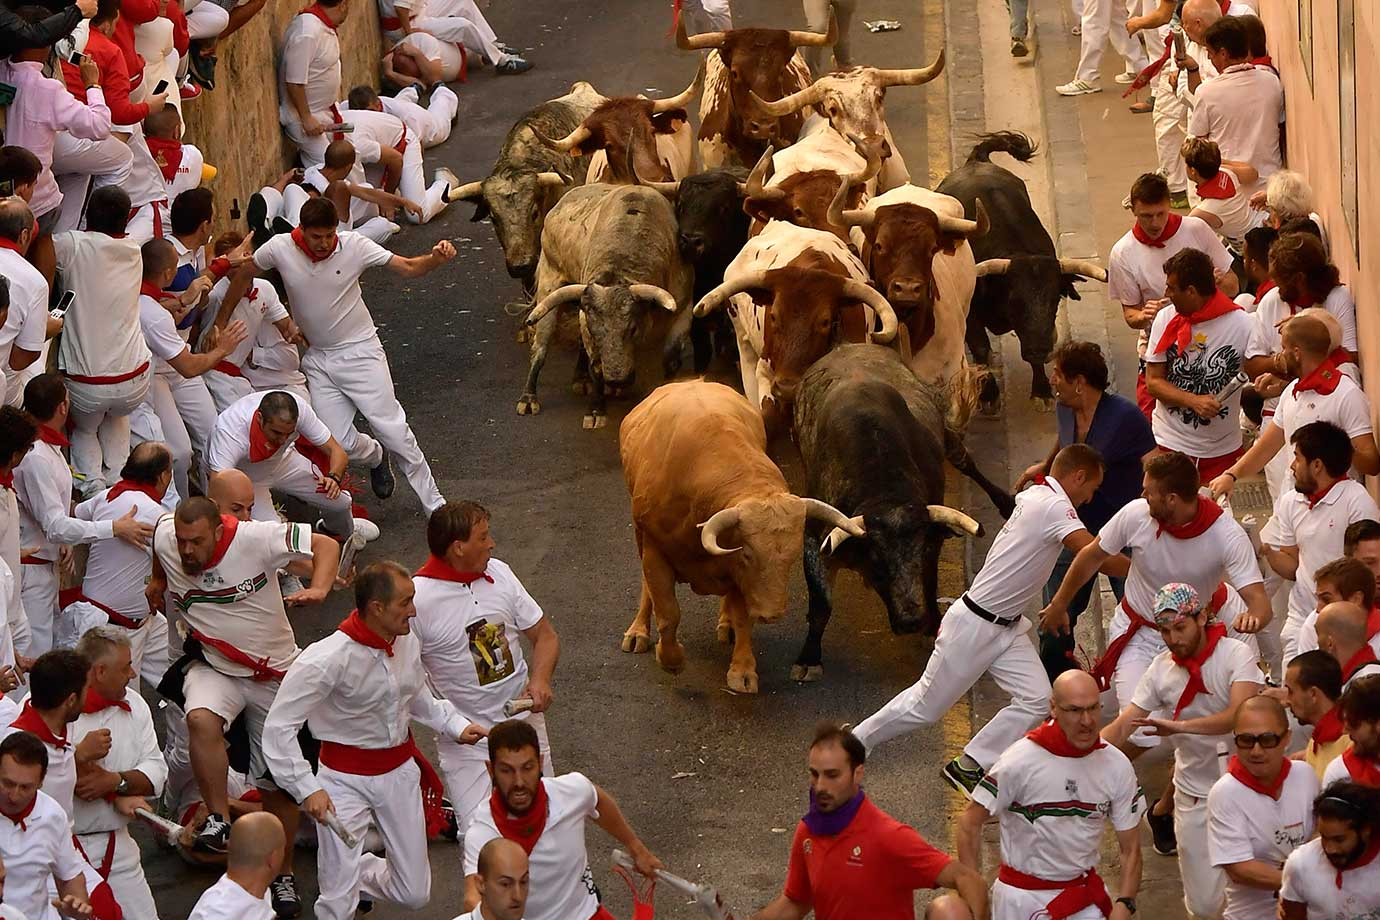 an analysis of the spanish culture and the running of the bulls at the fiesta de san fermin The festival of san fermín, or the running of the bulls as it's more commonly  known outside spain, officially begins at midday on 6th july every year with the.